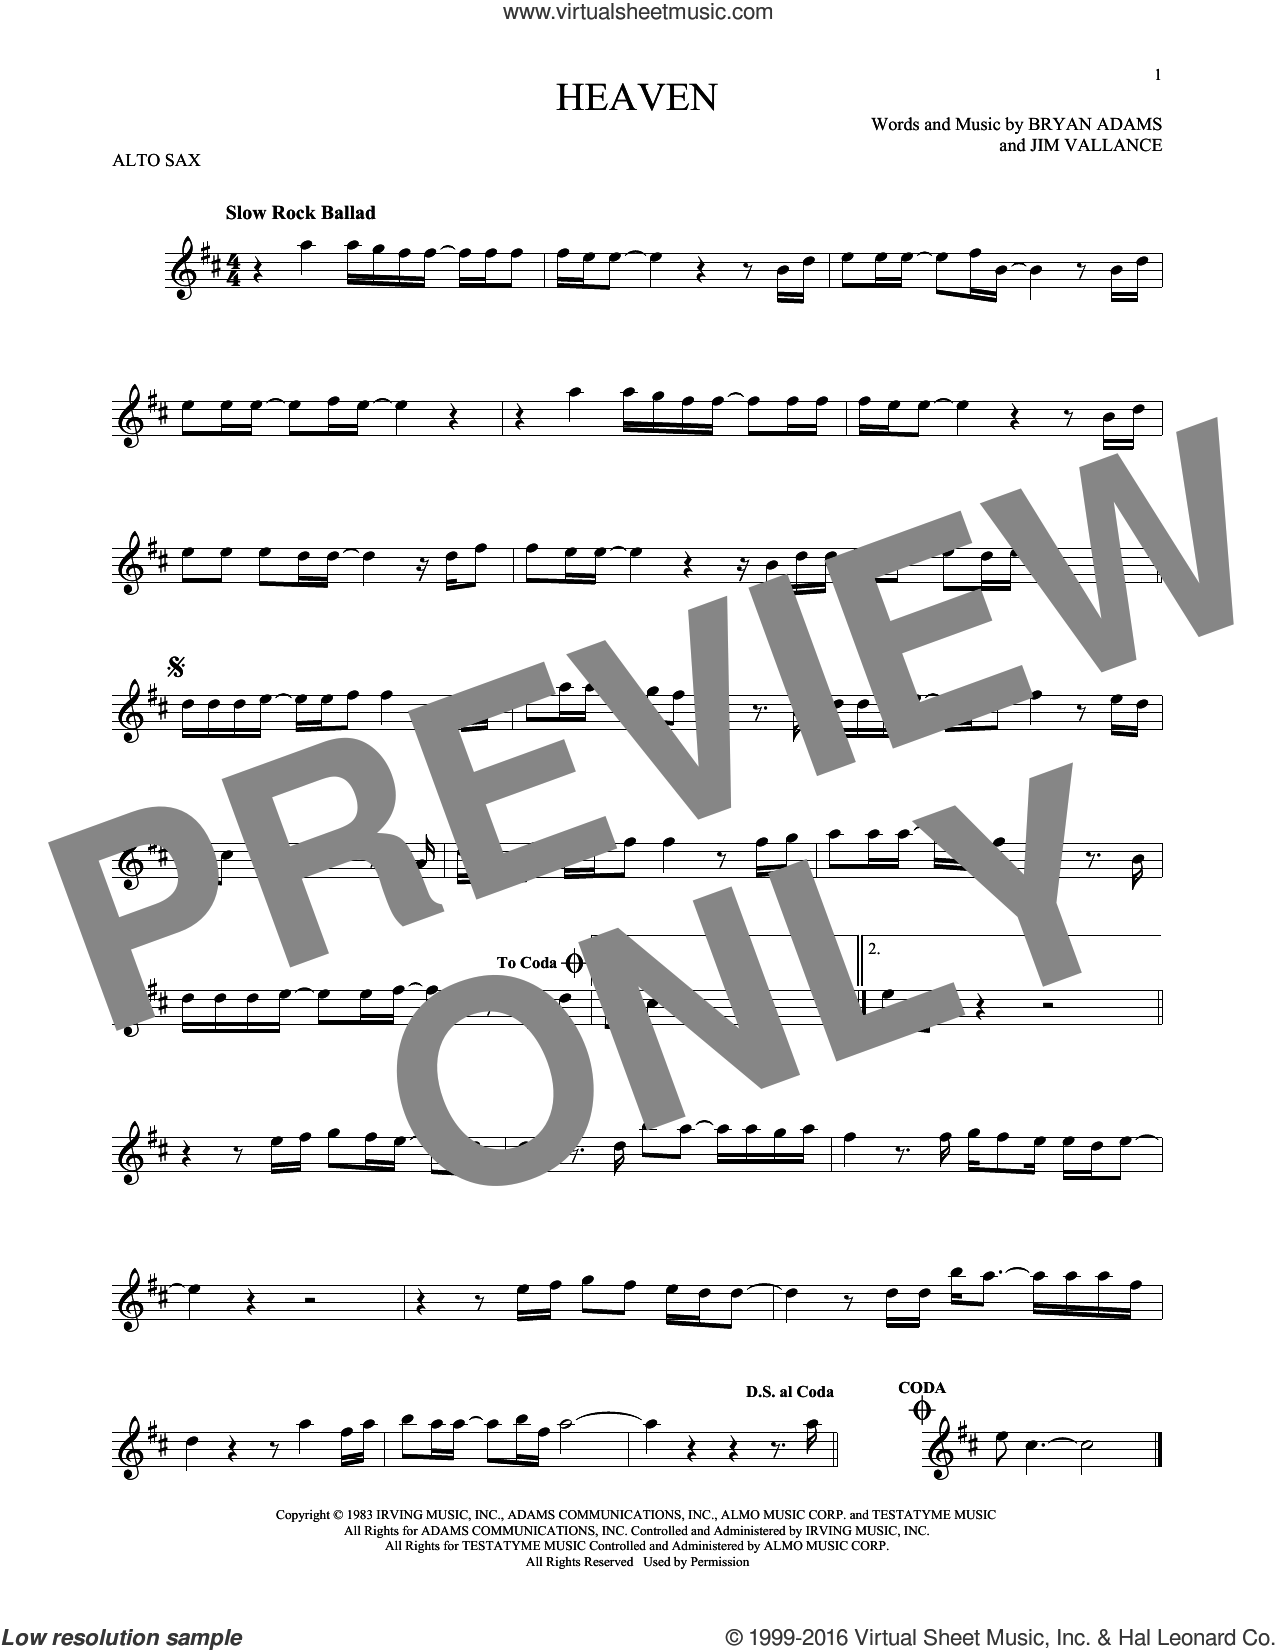 Heaven sheet music for alto saxophone solo by Bryan Adams and Jim Vallance, intermediate skill level